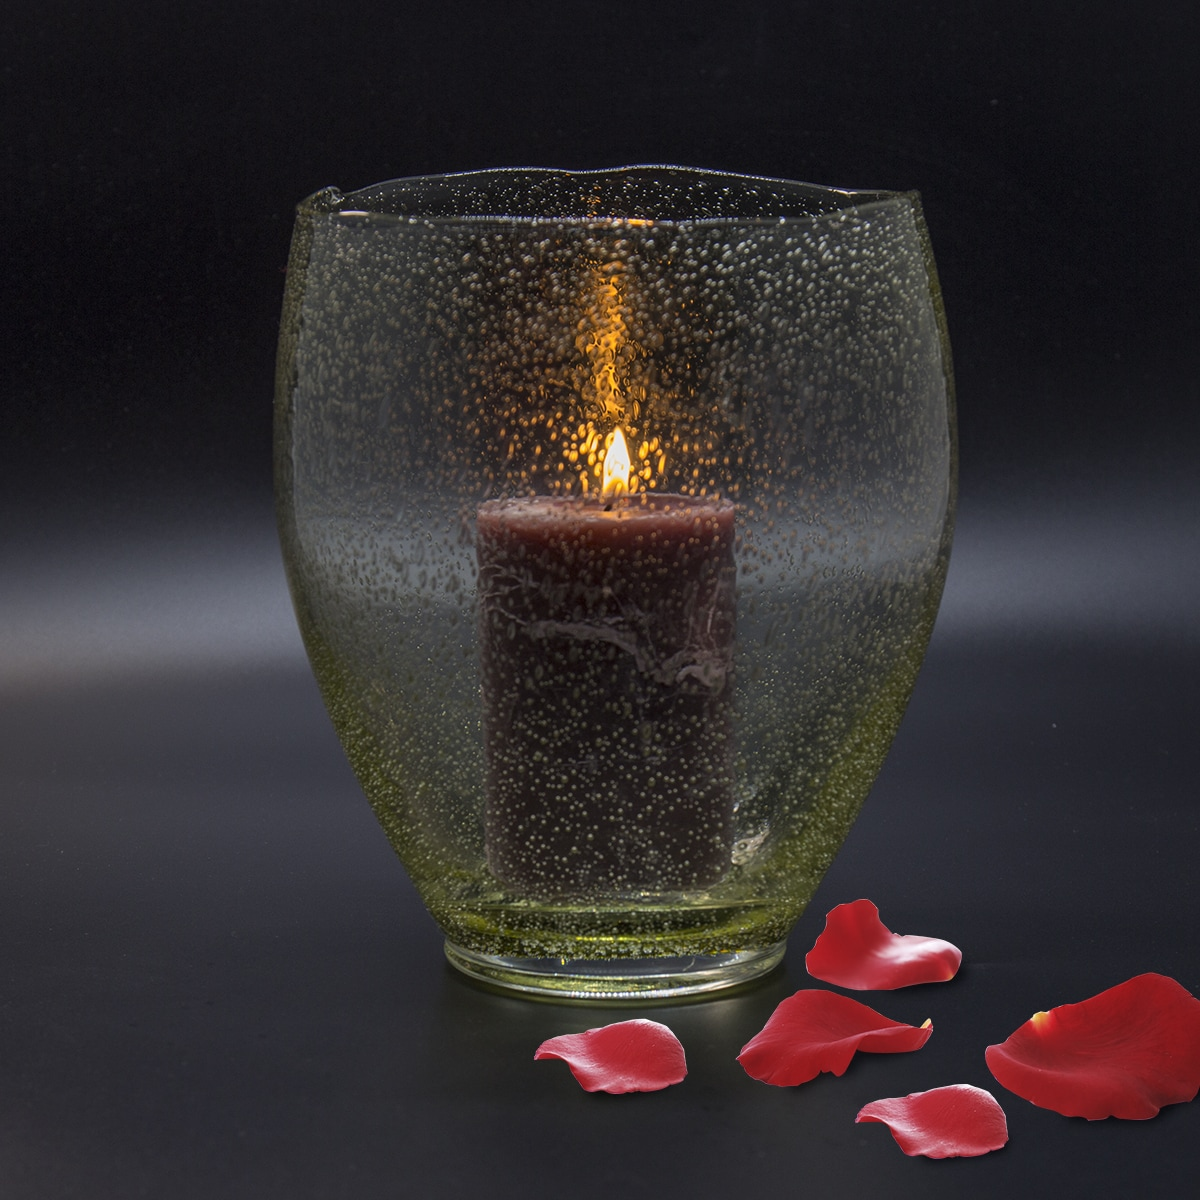 Candle made with Tar